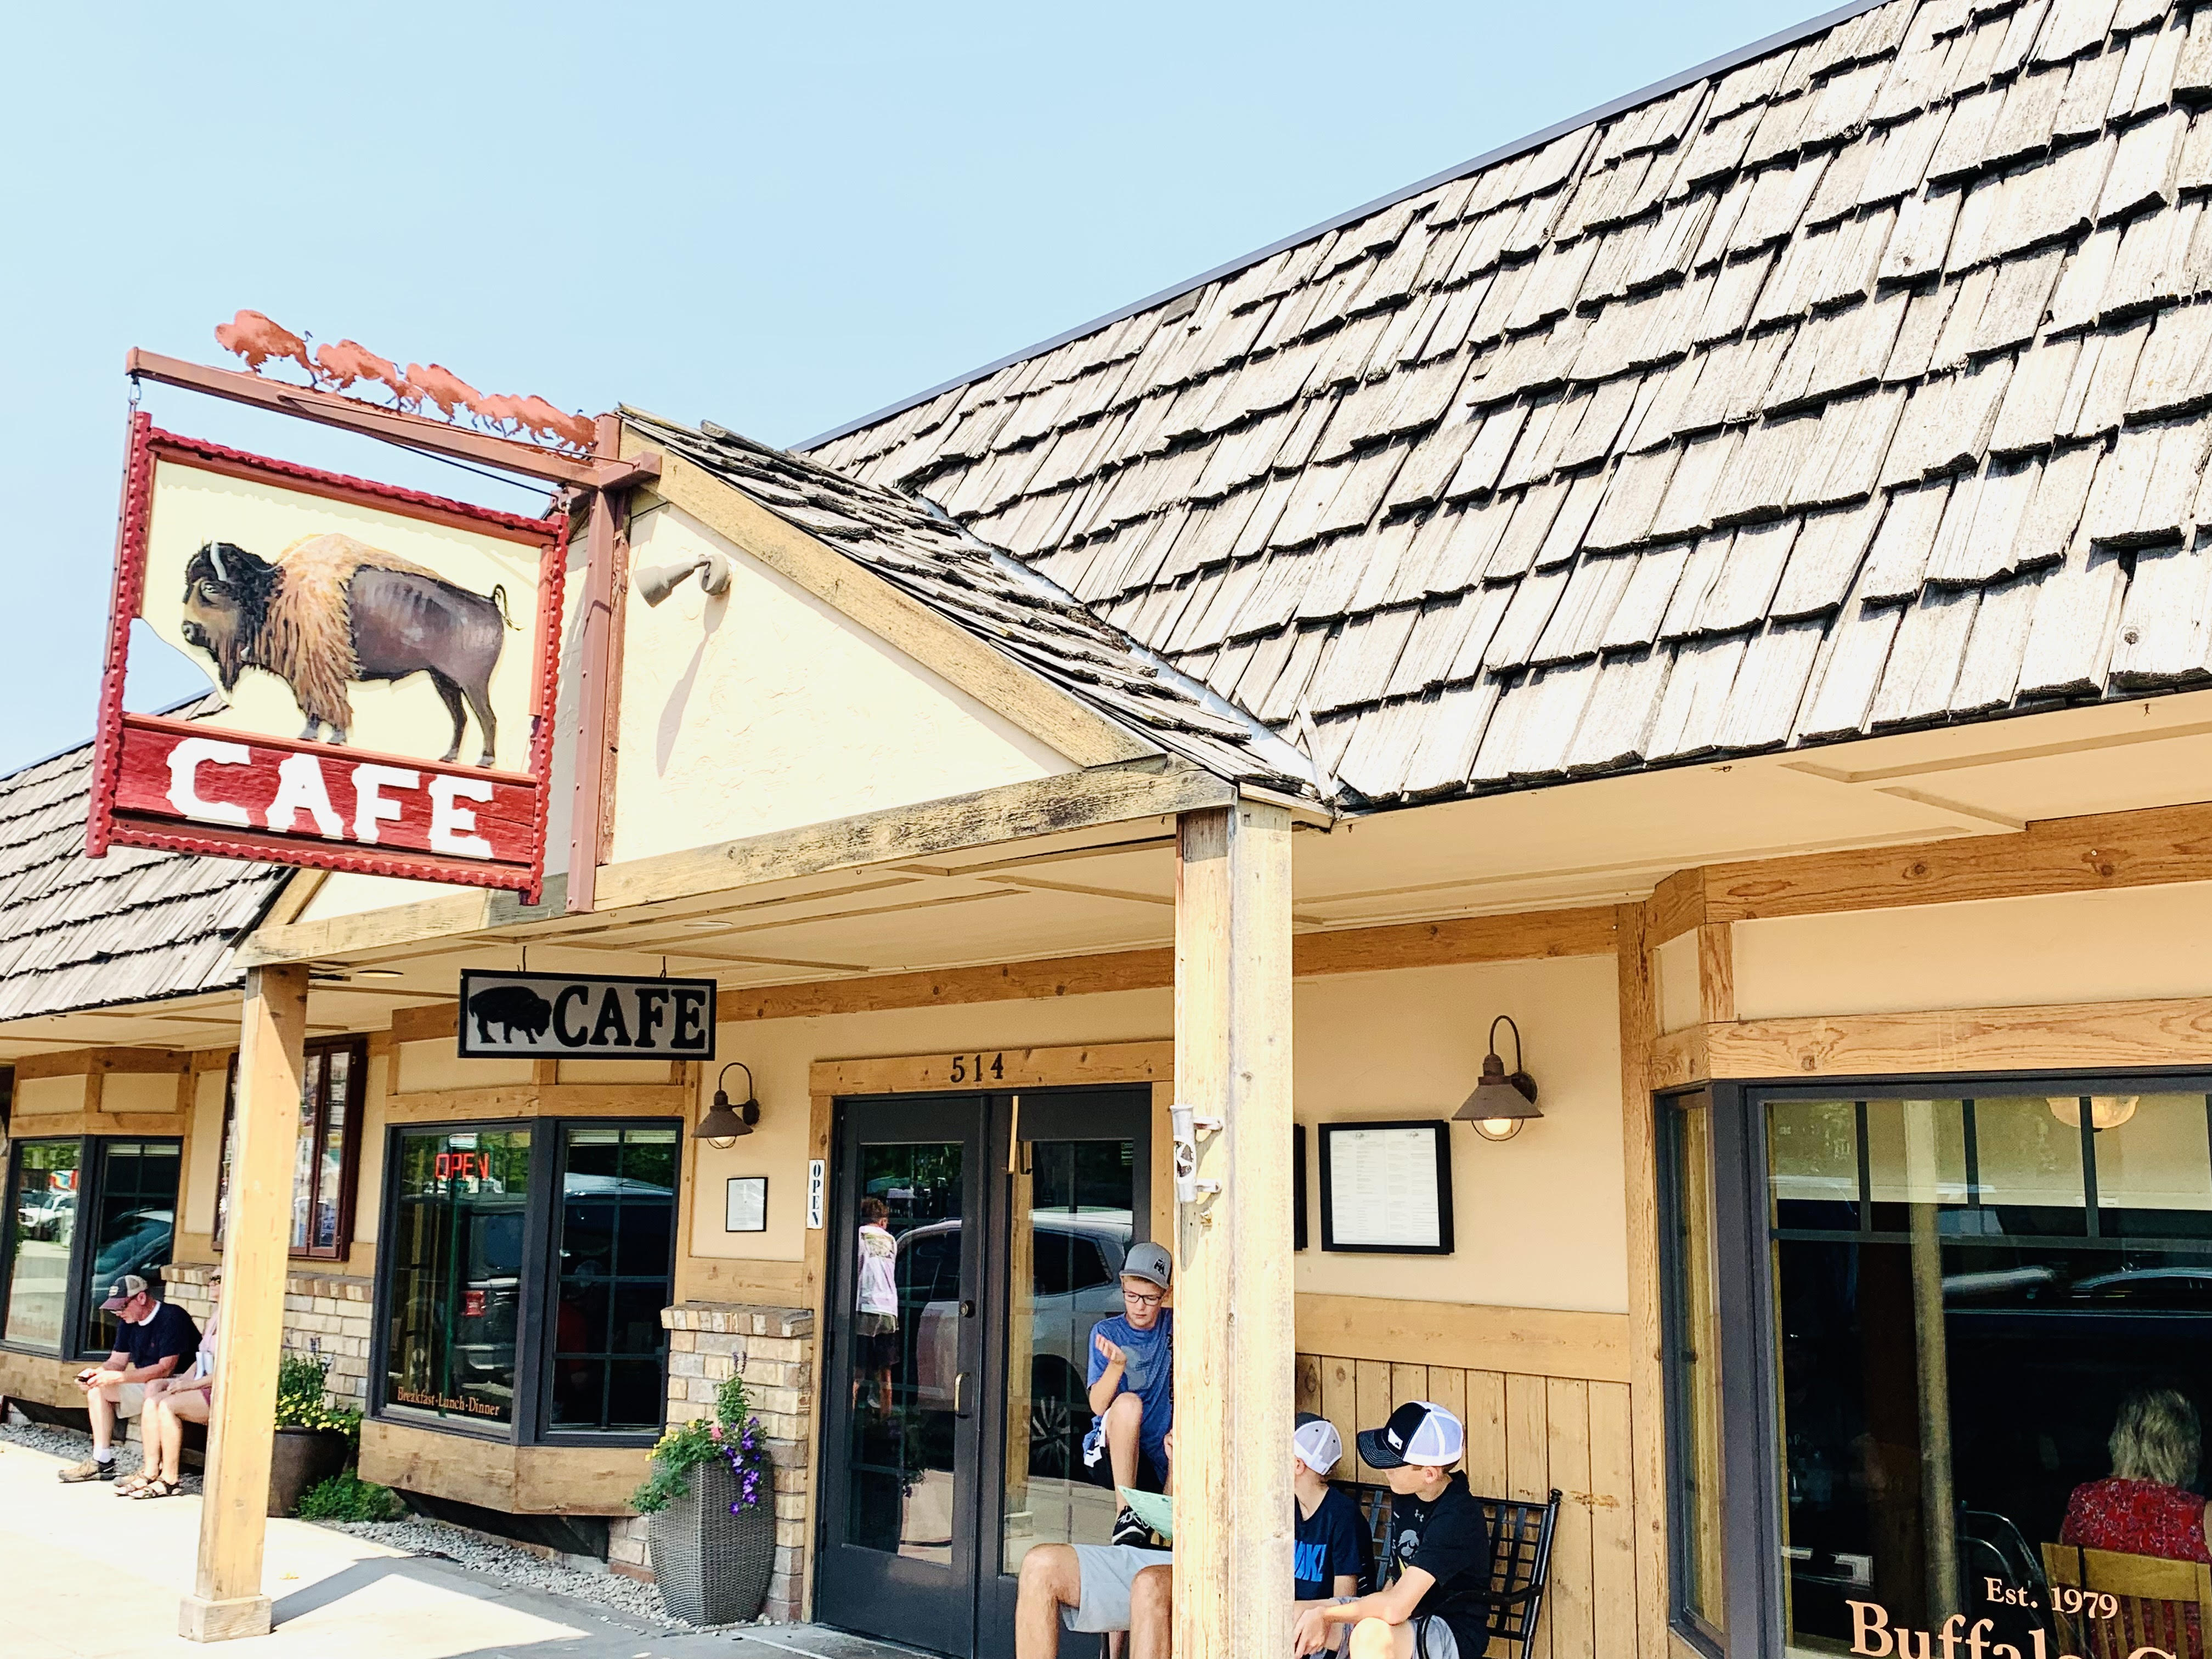 The Buffalo Cafe (Featured as one of the best restaurants in Whitefish, Montana by top US family travel blog, Travel With A Plan!)